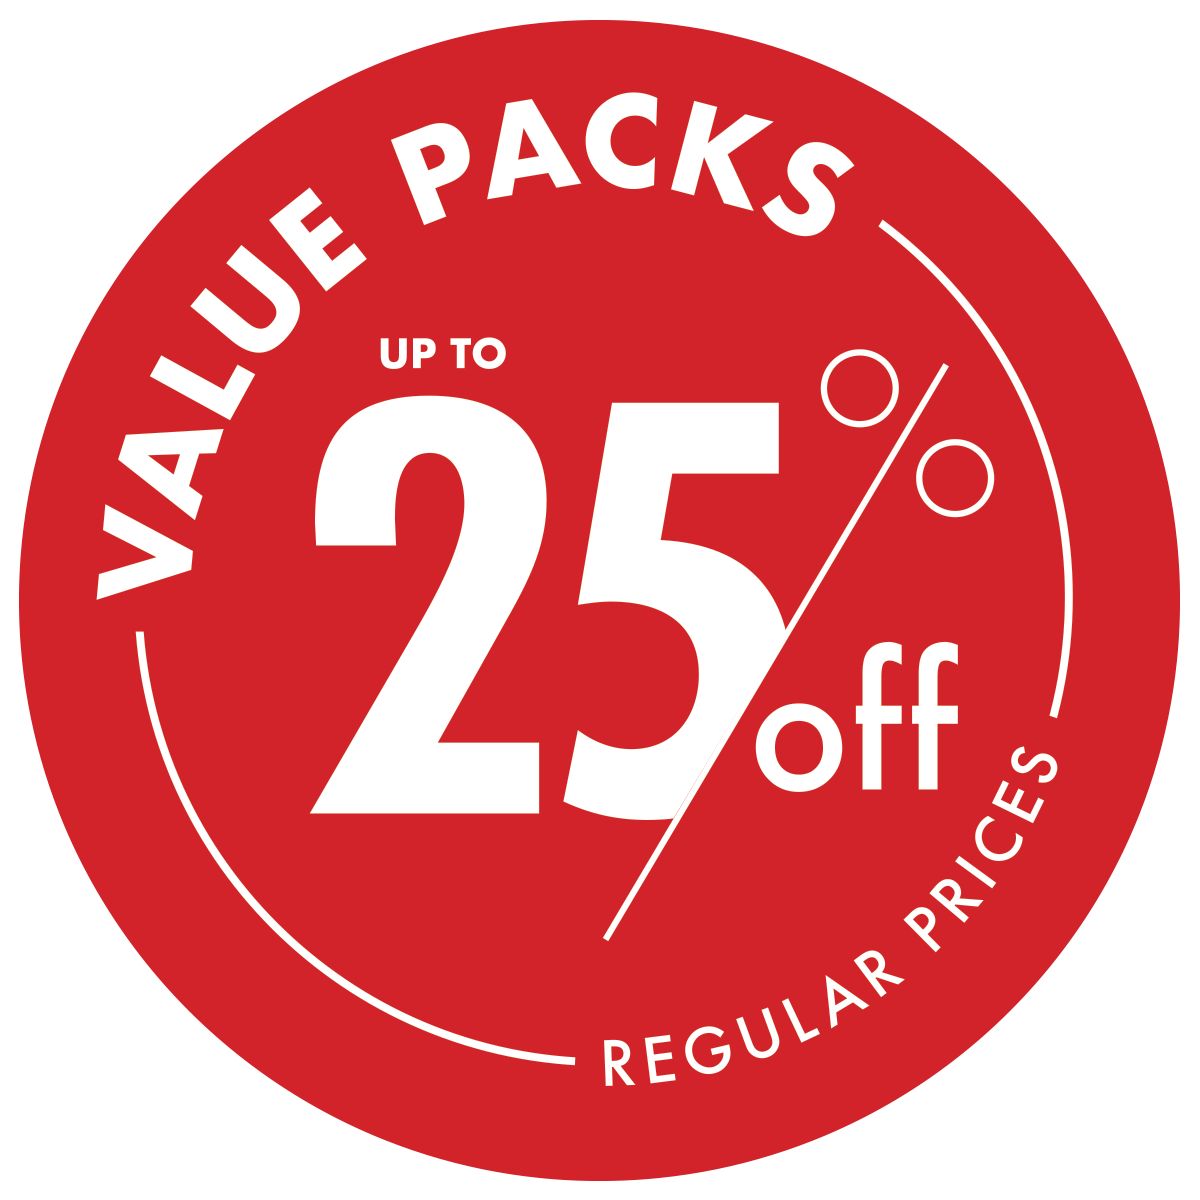 Value Packs up to 25% Off